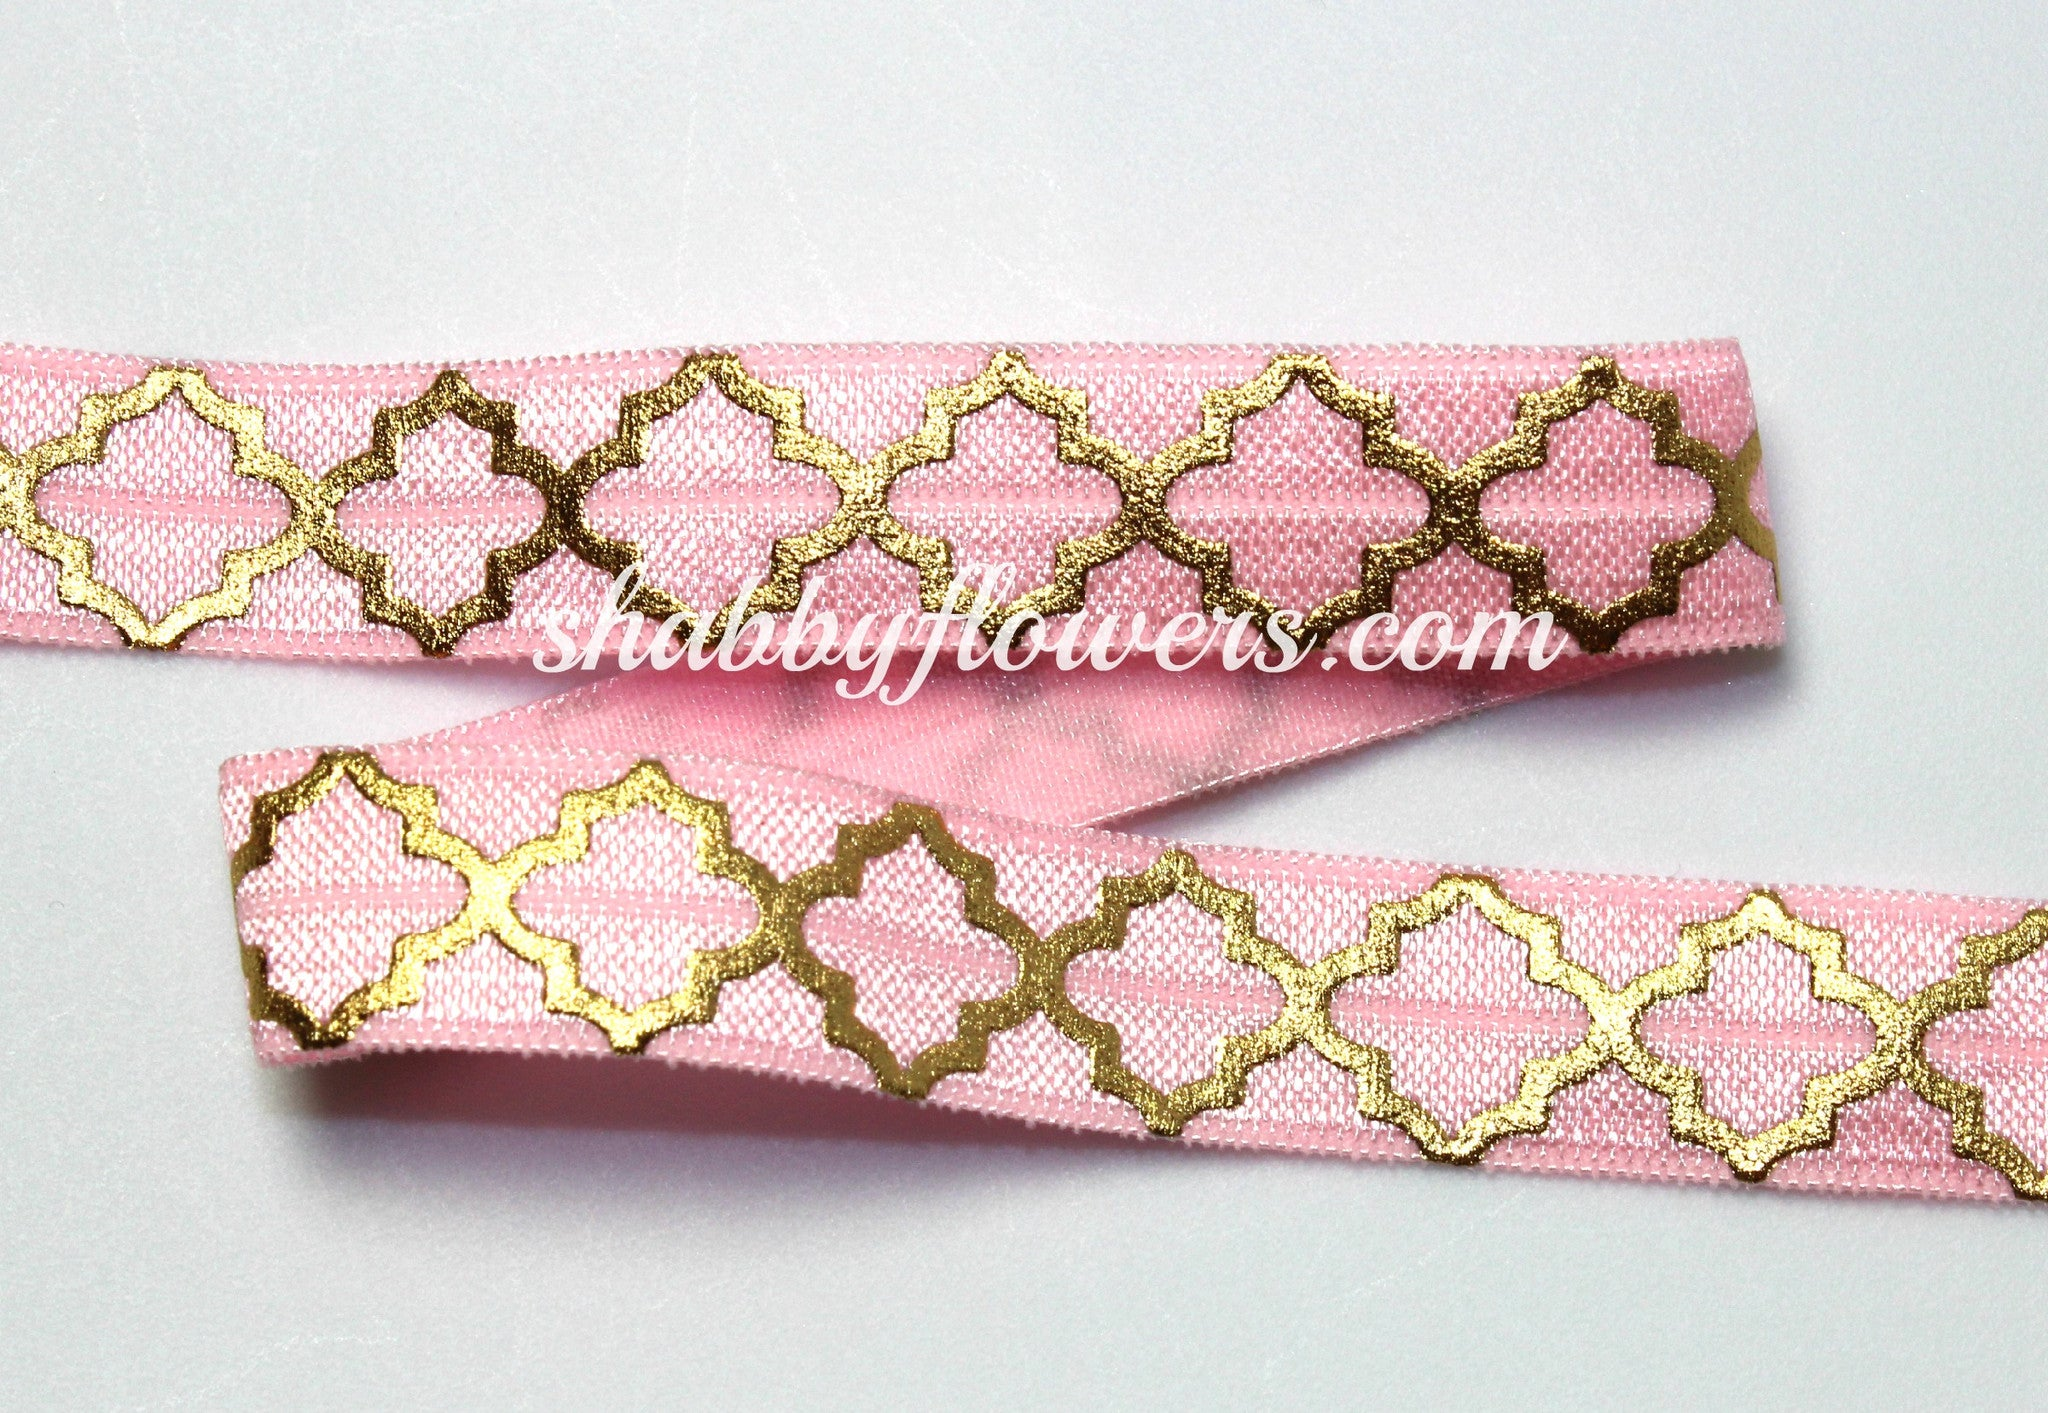 Elastic- Gold Foil Quatrefoil on Light Pink - 5 yards - shabbyflowers.com